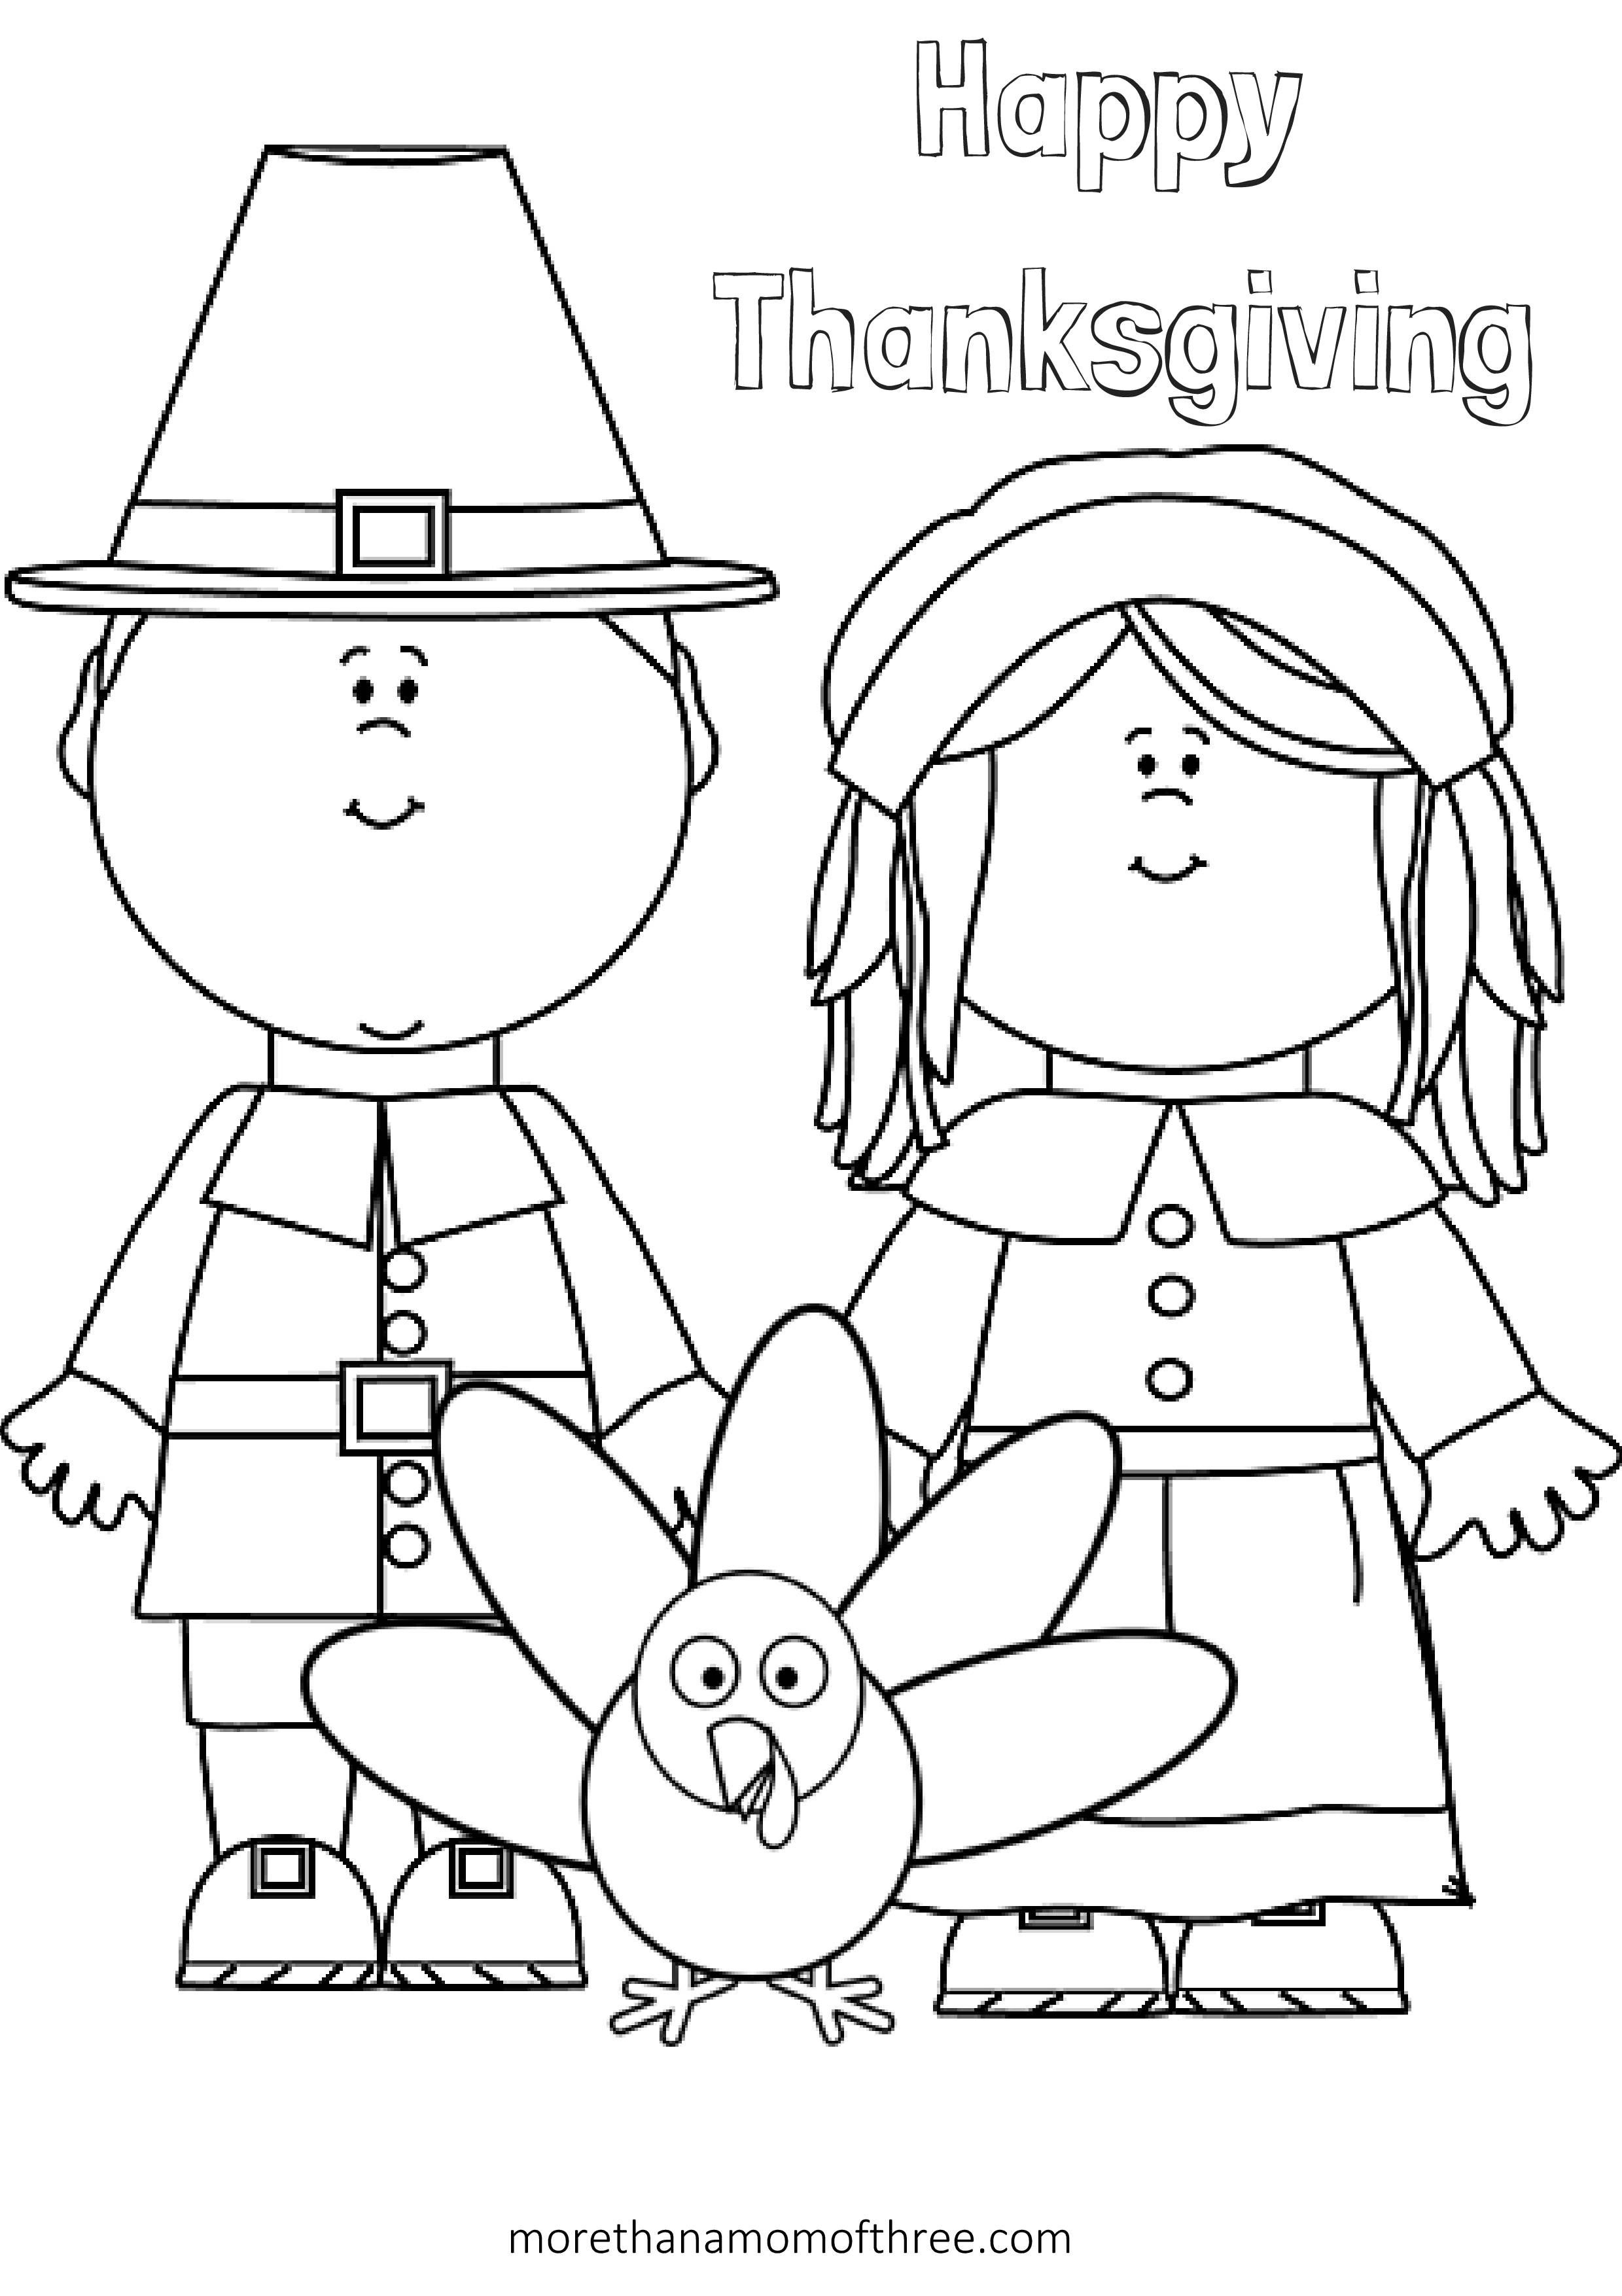 Free Thanksgiving Coloring Pages Printables For Kids | Thanksgiving - Free Printable Thanksgiving Coloring Pages